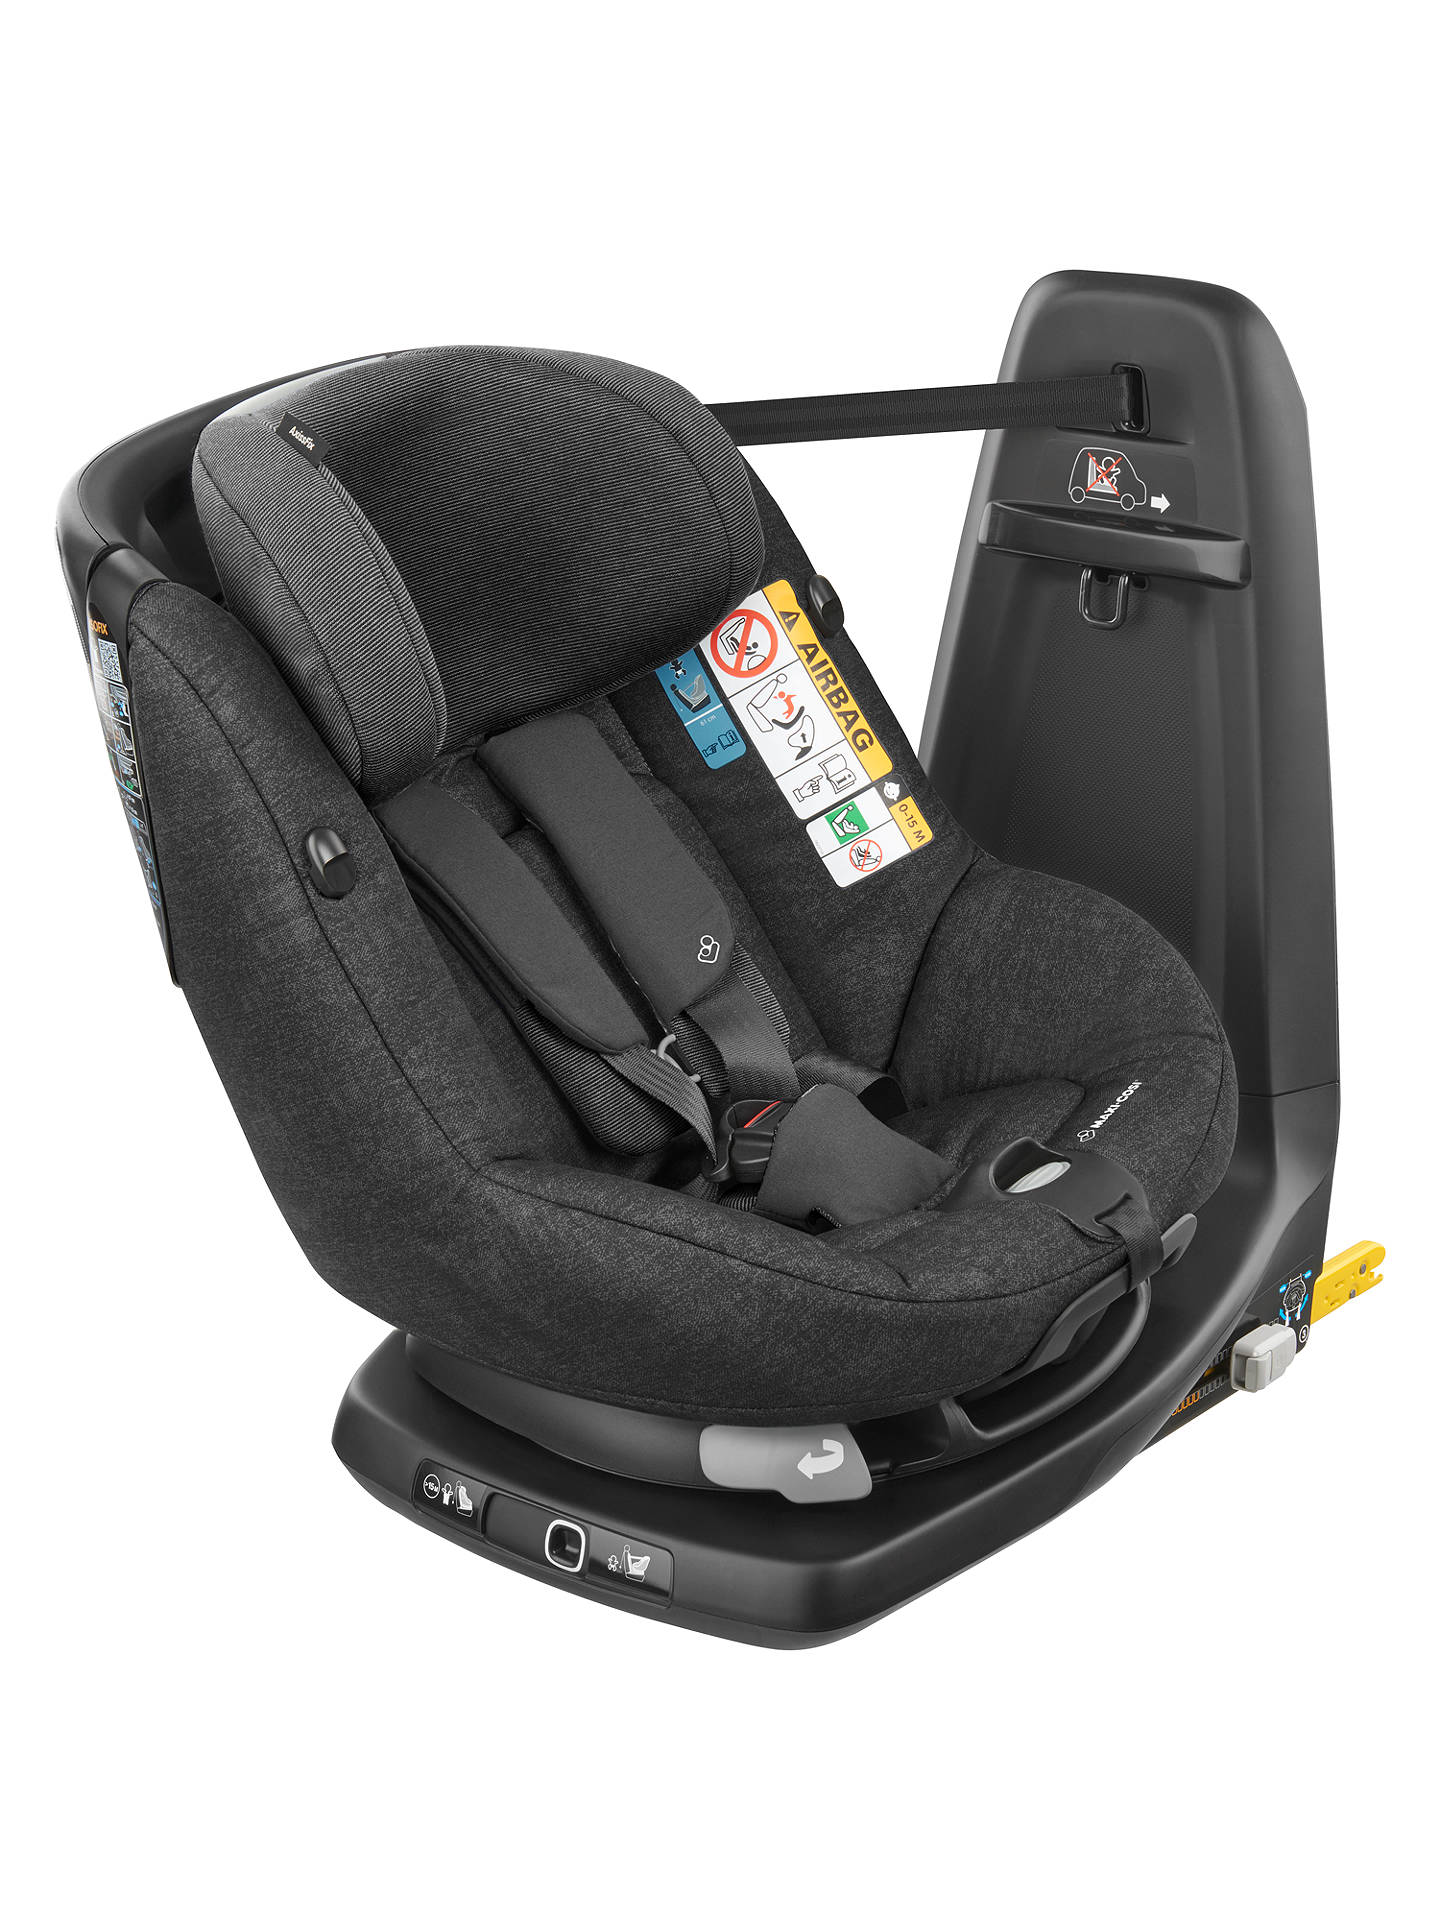 Maxi Cosi Axissfix Group 1 I Size Car Seat Nomad Black At John